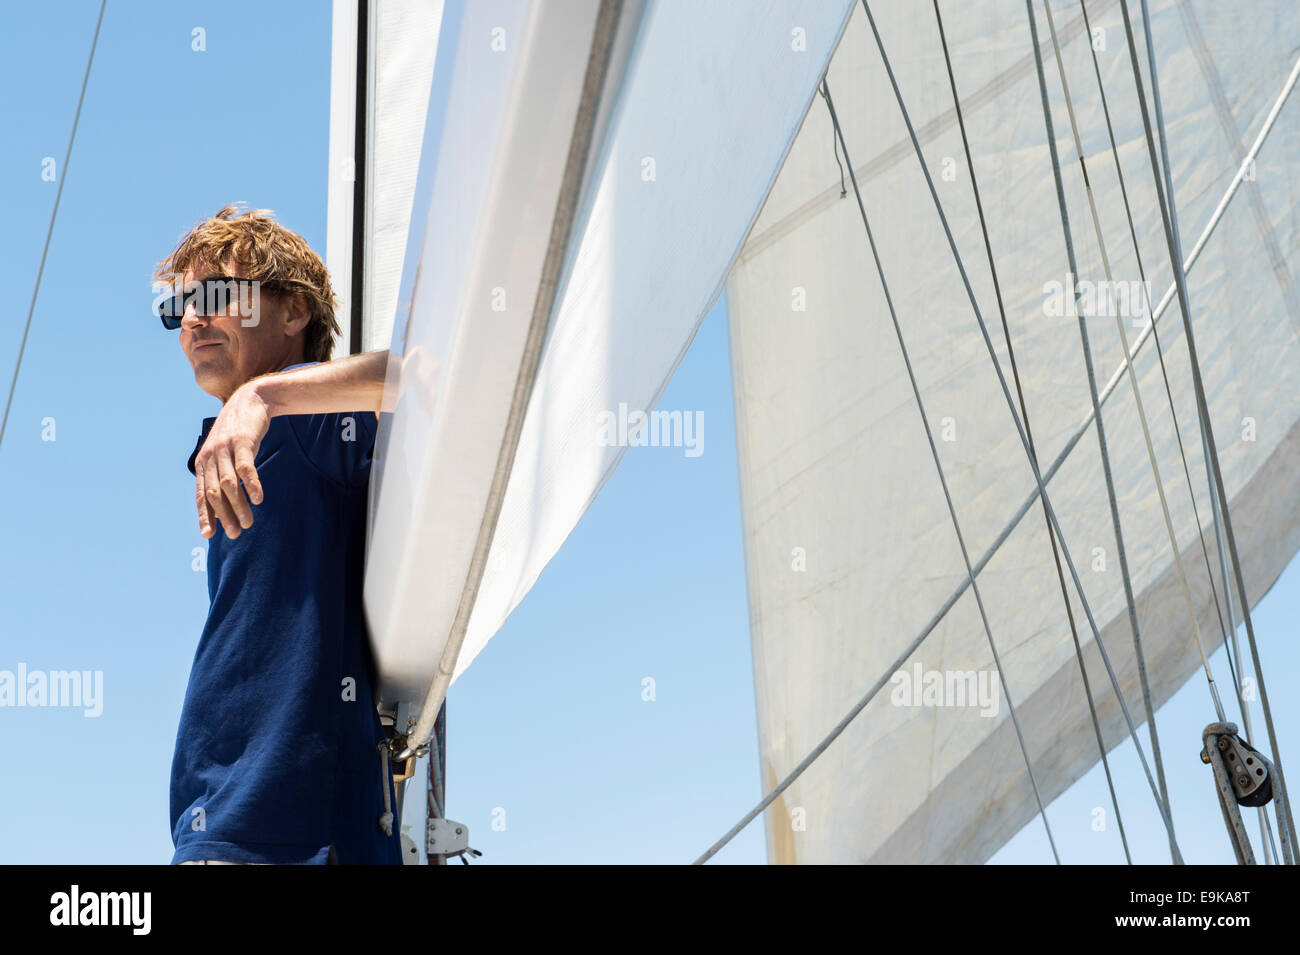 Side view of middle-aged man on yacht - Stock Image